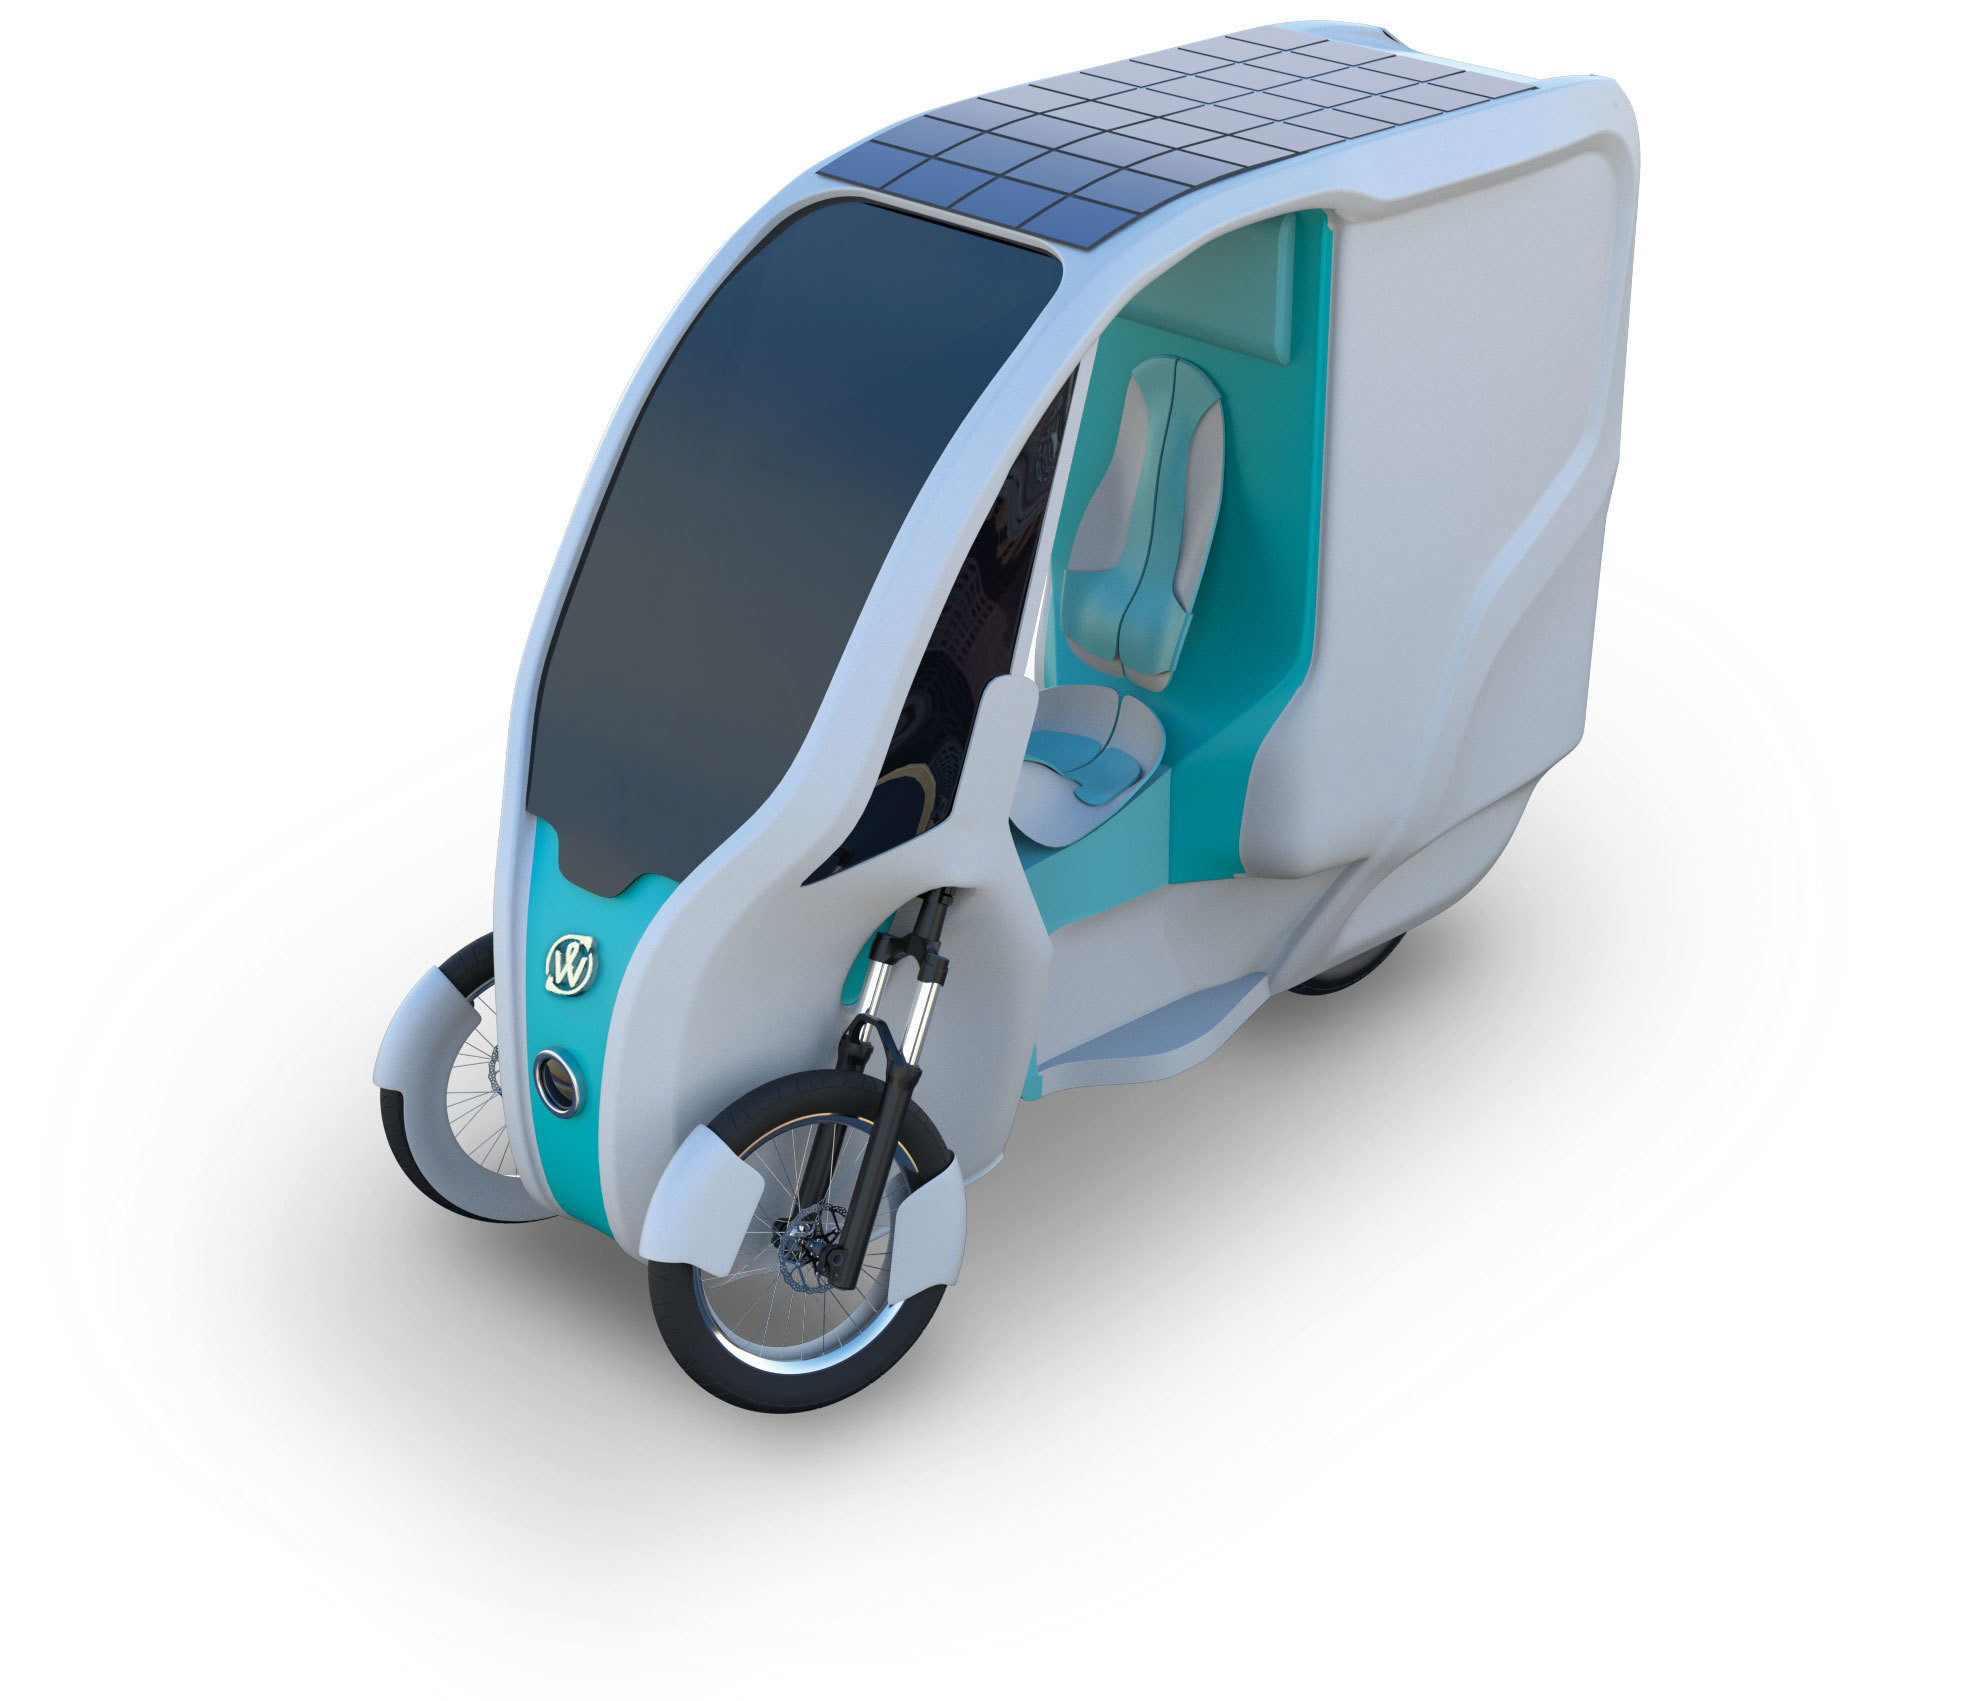 The solar powered tricycle.